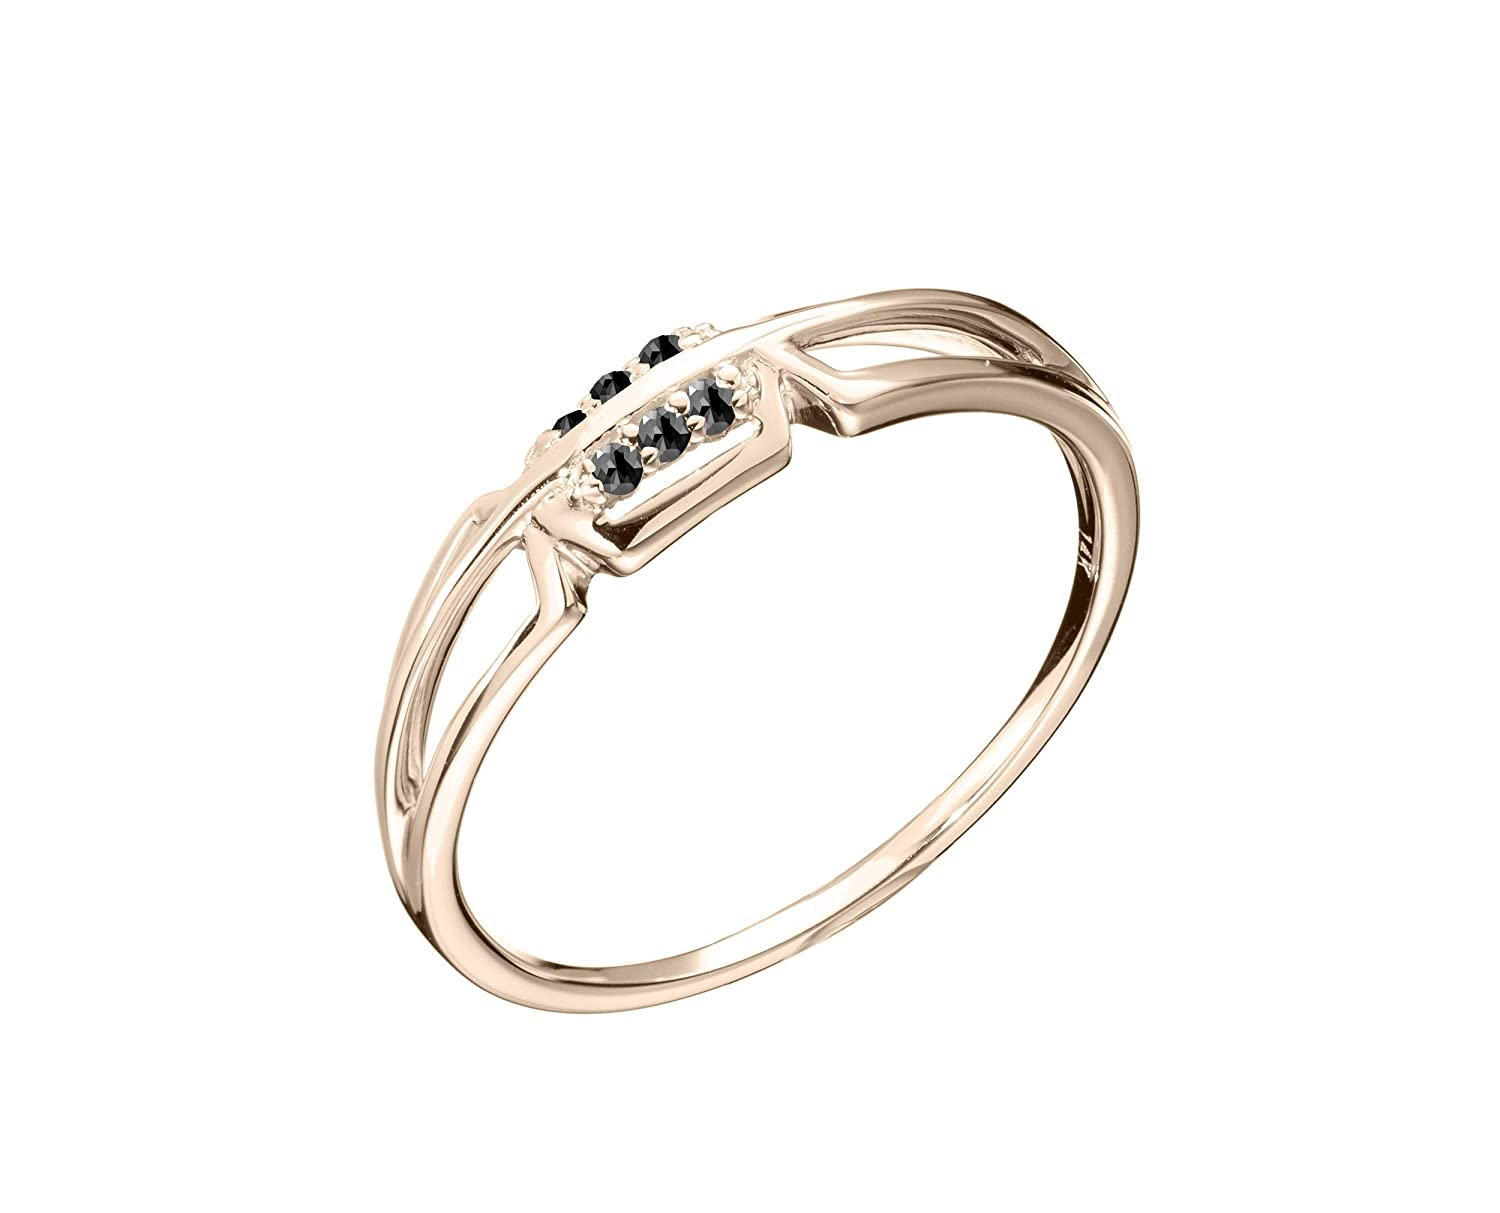 Amazon Com Black Diamond Men Wedding Band By Majade Men Black Diamond Ring Men Diamond Wedding Ring Black Diamond Engagement Ring Handmade Solid 14k Yellow Gold Ring For Men Simple Engagement Ring For